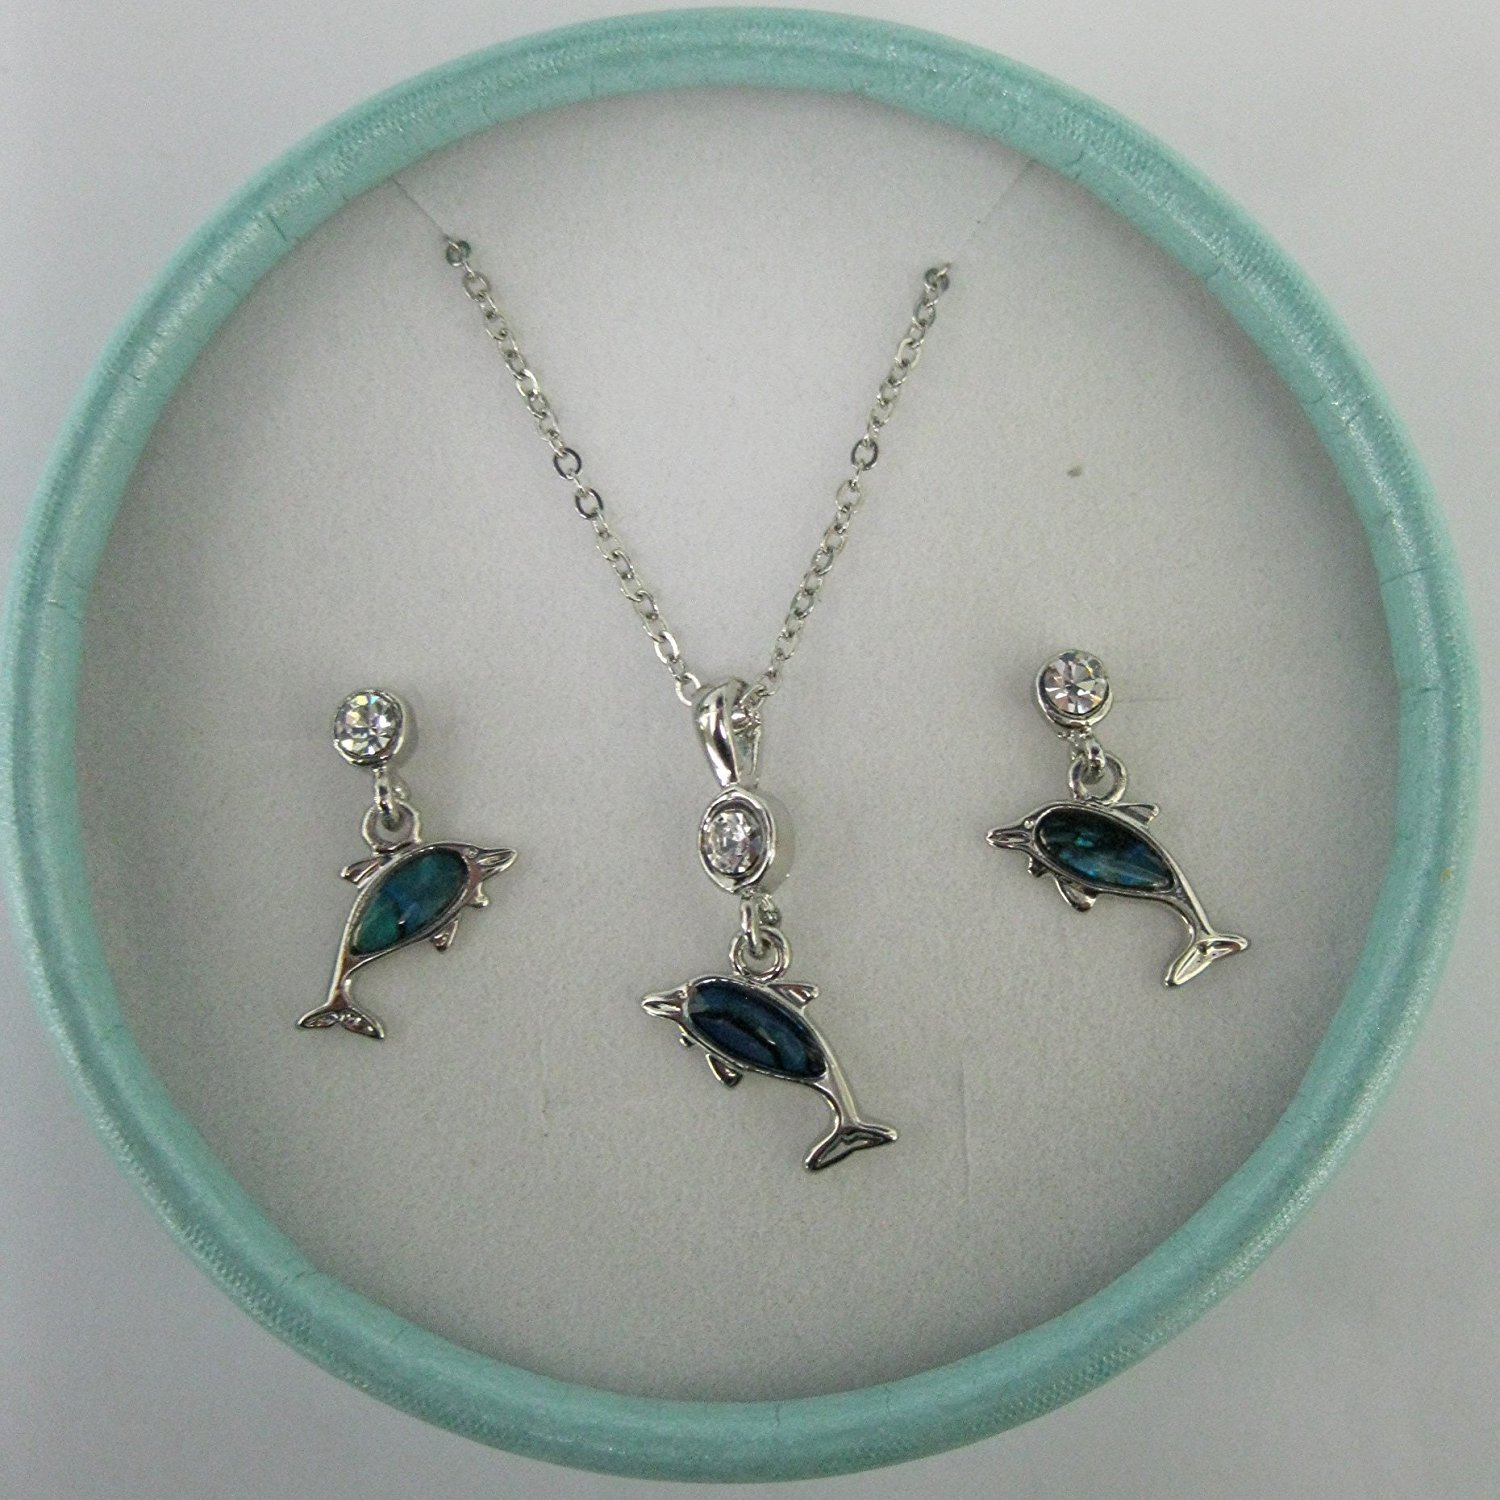 necklaces pendant shell wheeler paua pap blue